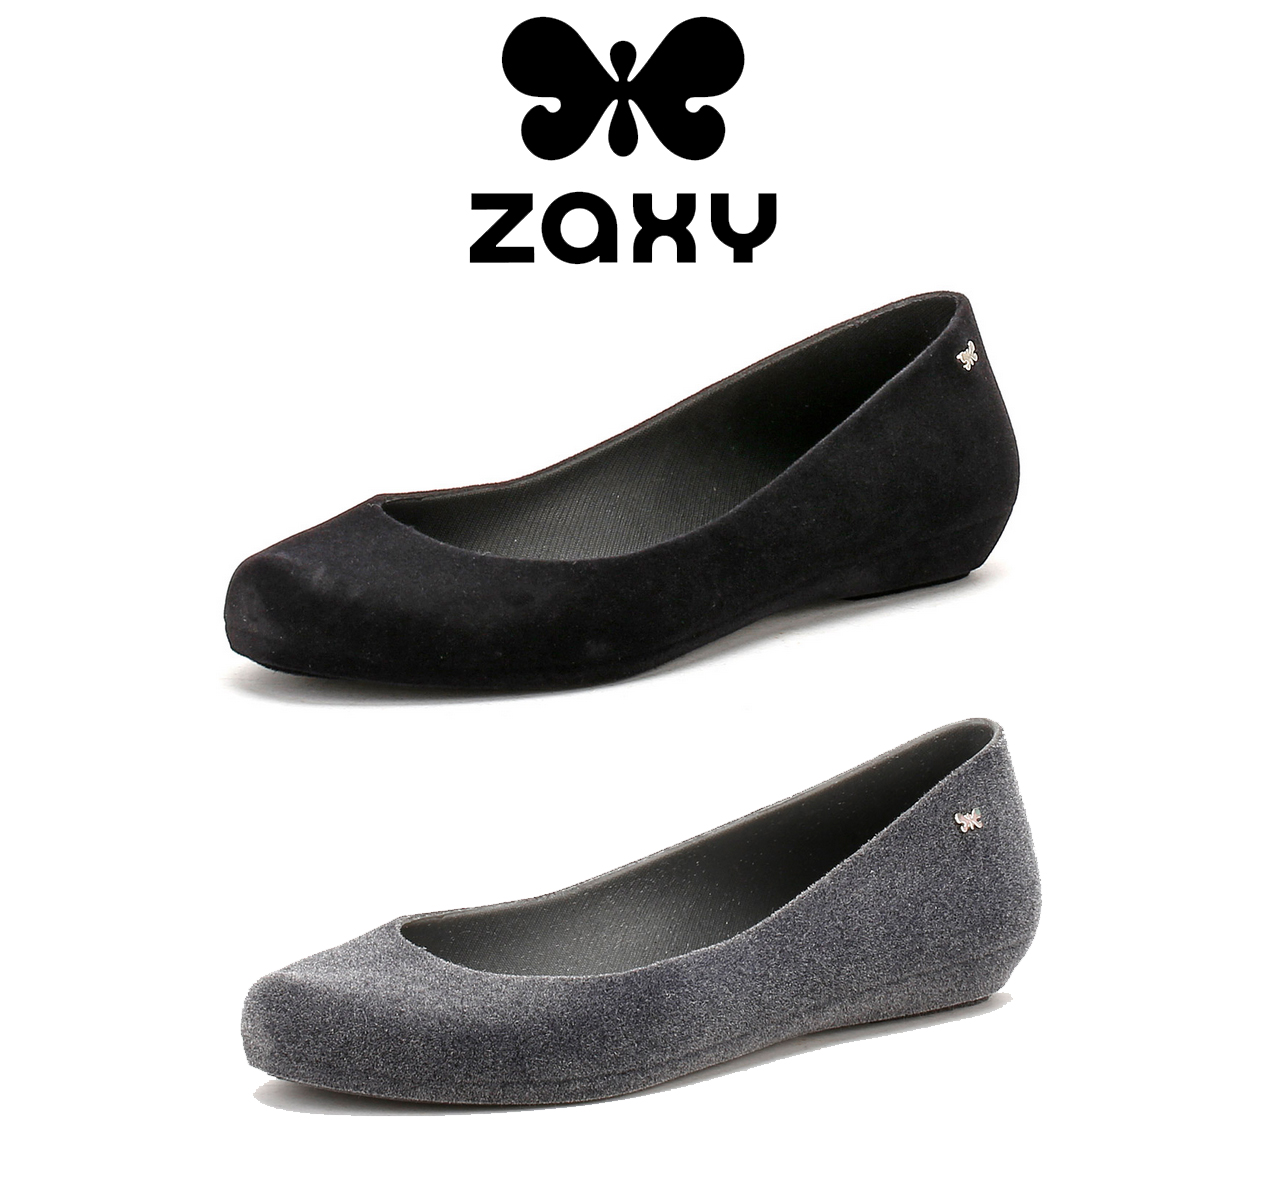 413112986494 Zaxy is a Brazilian brand that specialise in eco-friendly footwear for women  and children. Their ethical approach and vibrant colour choices make them a  ...